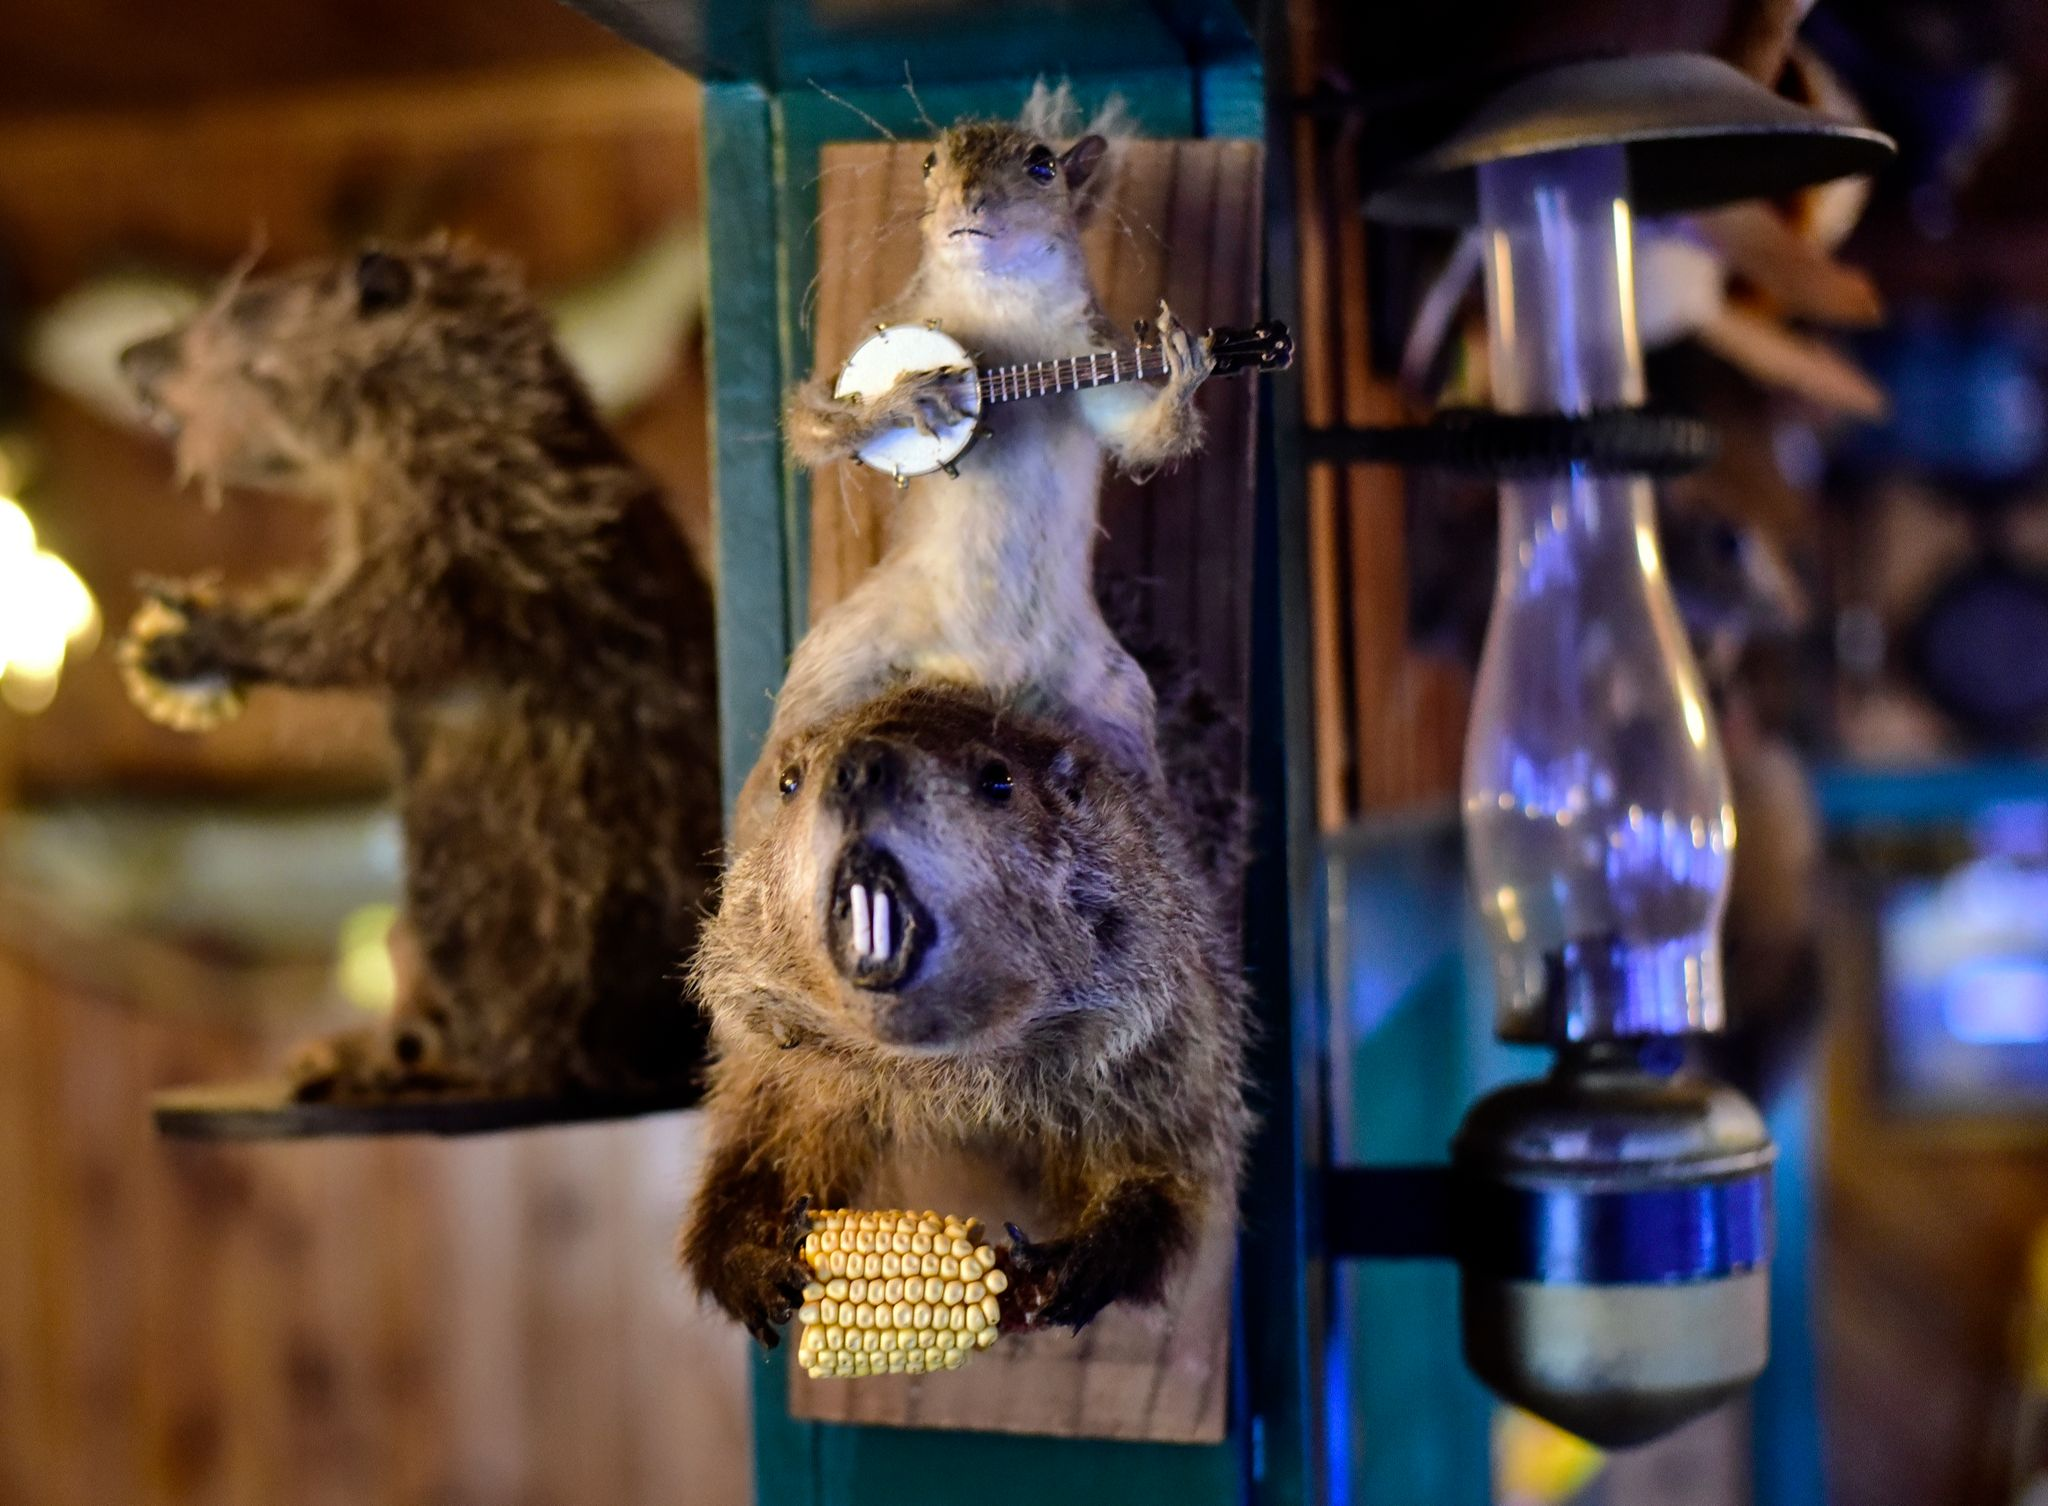 Adam has a good friend, Zach, who runs a taxidermy service and sometimes will make silly scenes out of animals. 'Kenny' is the squirrel that plays the banjo.